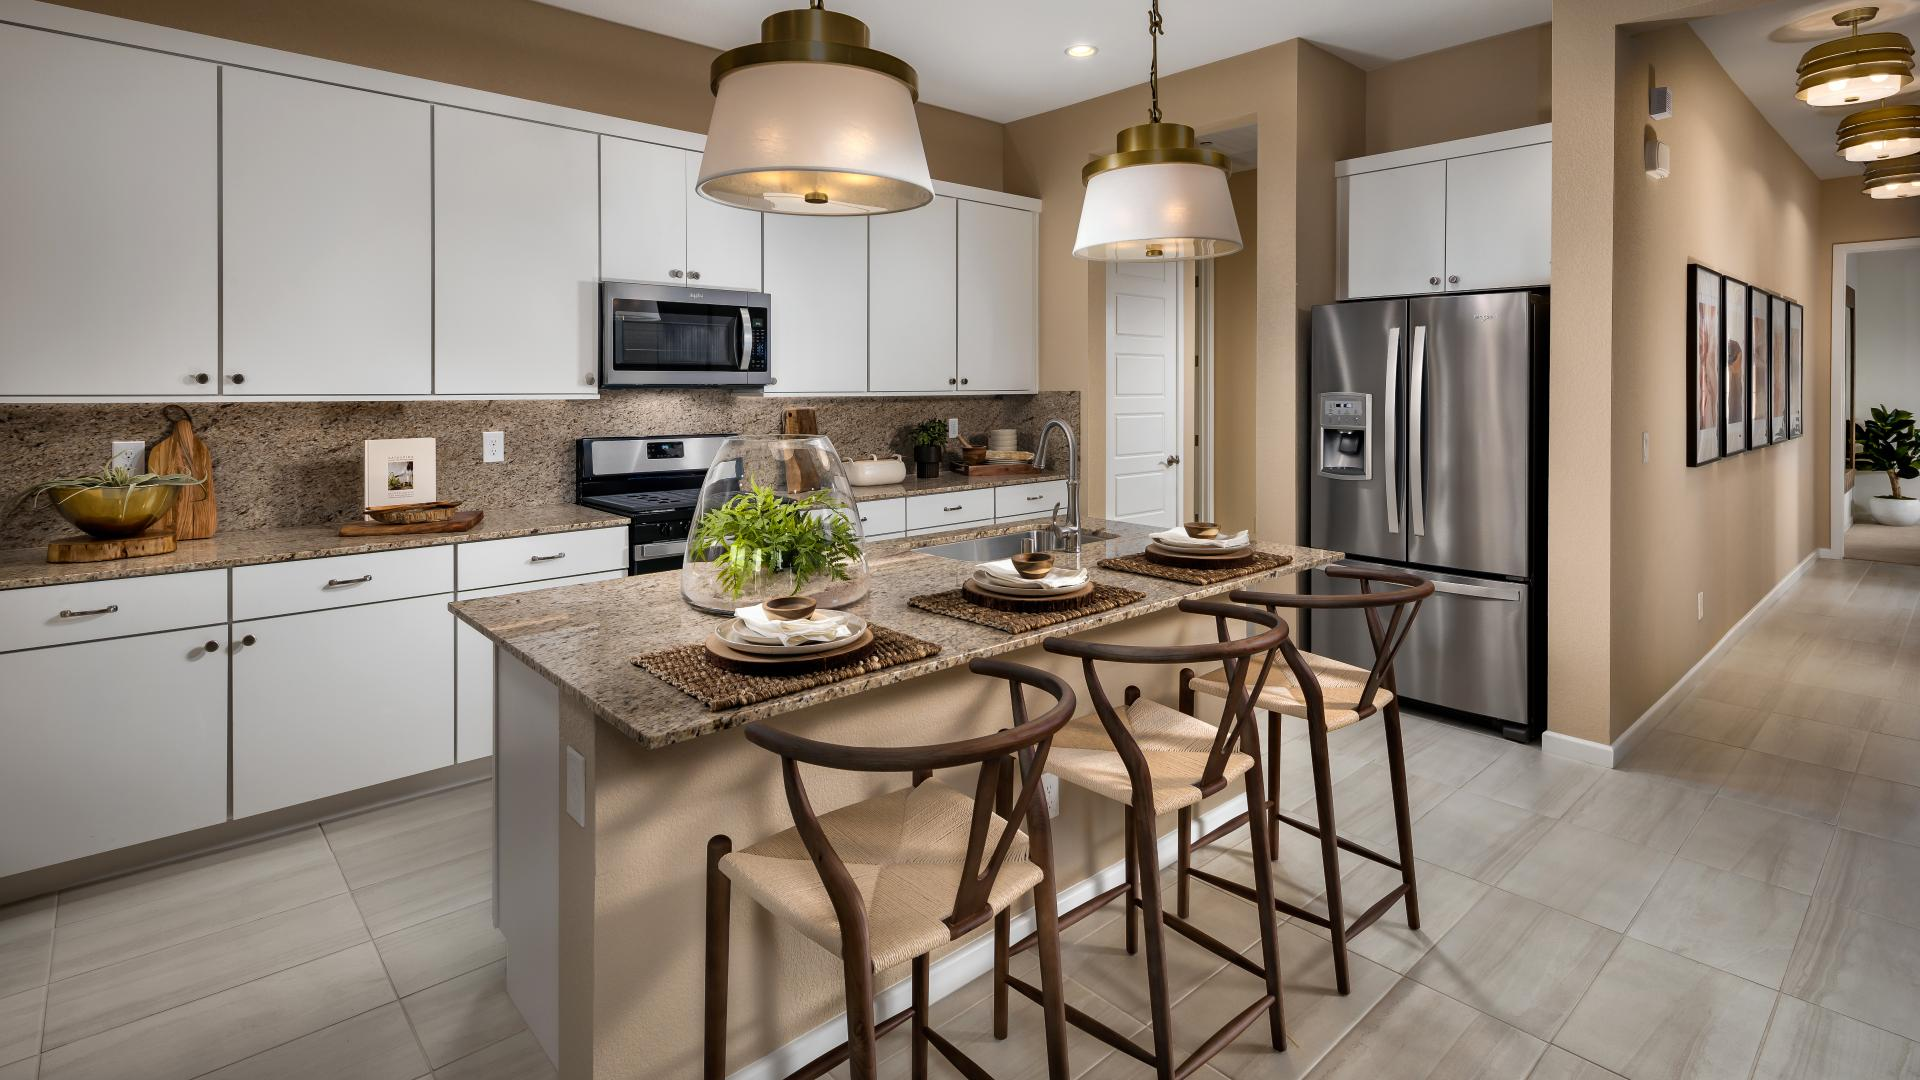 Modern kitchen designs with ample counter space